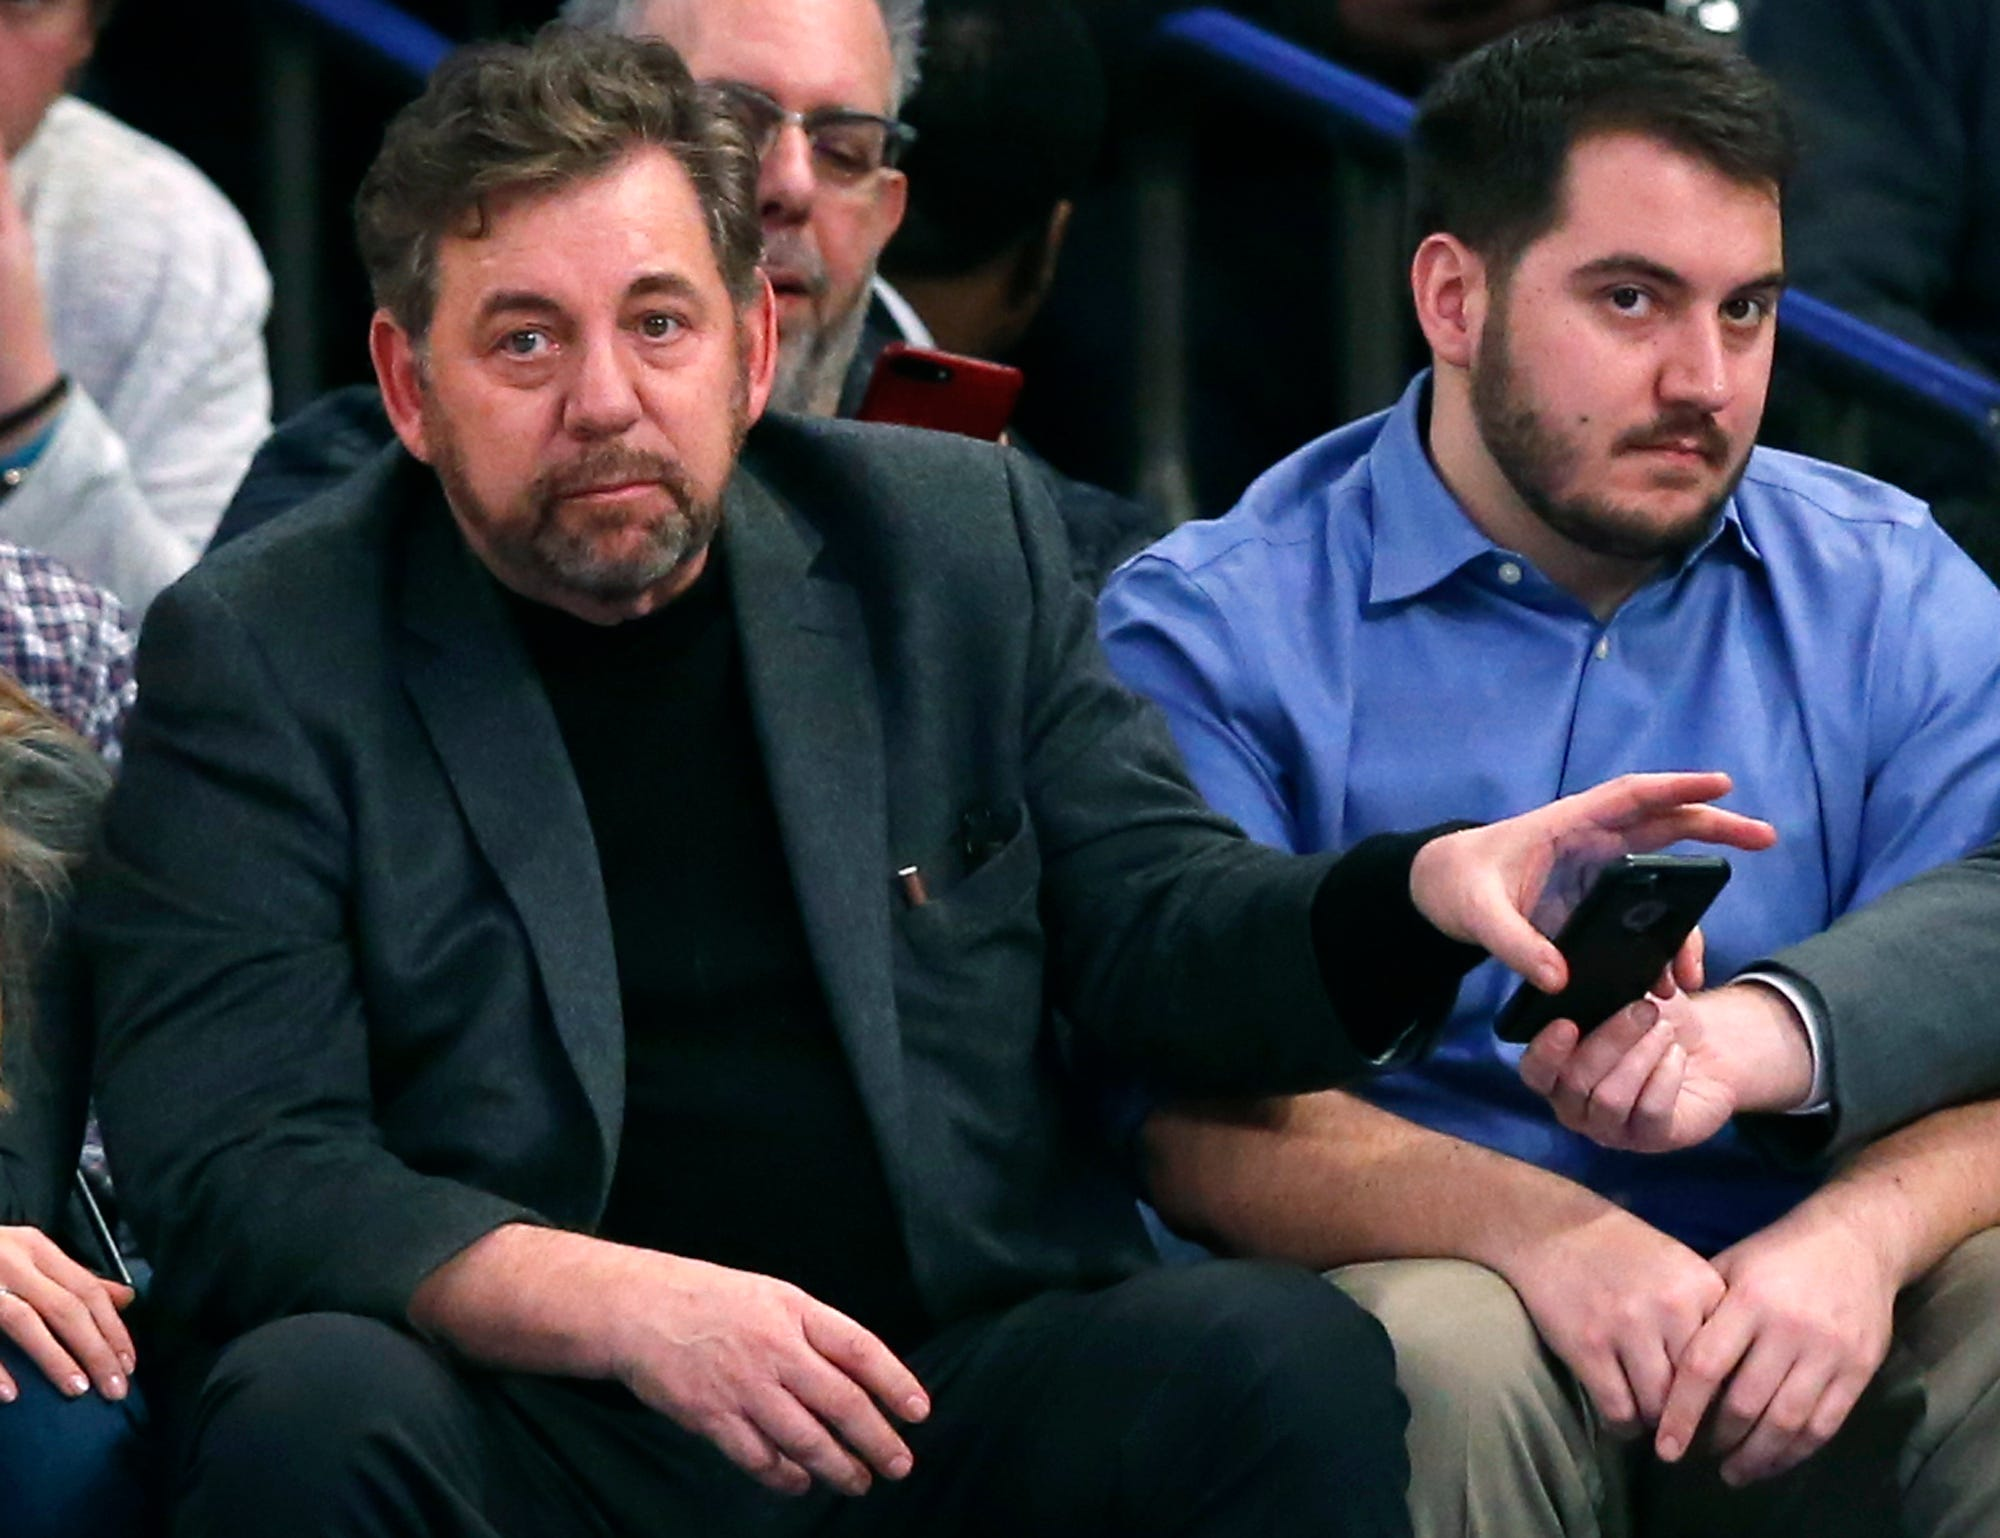 Knicks shoot down report of James Dolan 'courting offers' to sell team